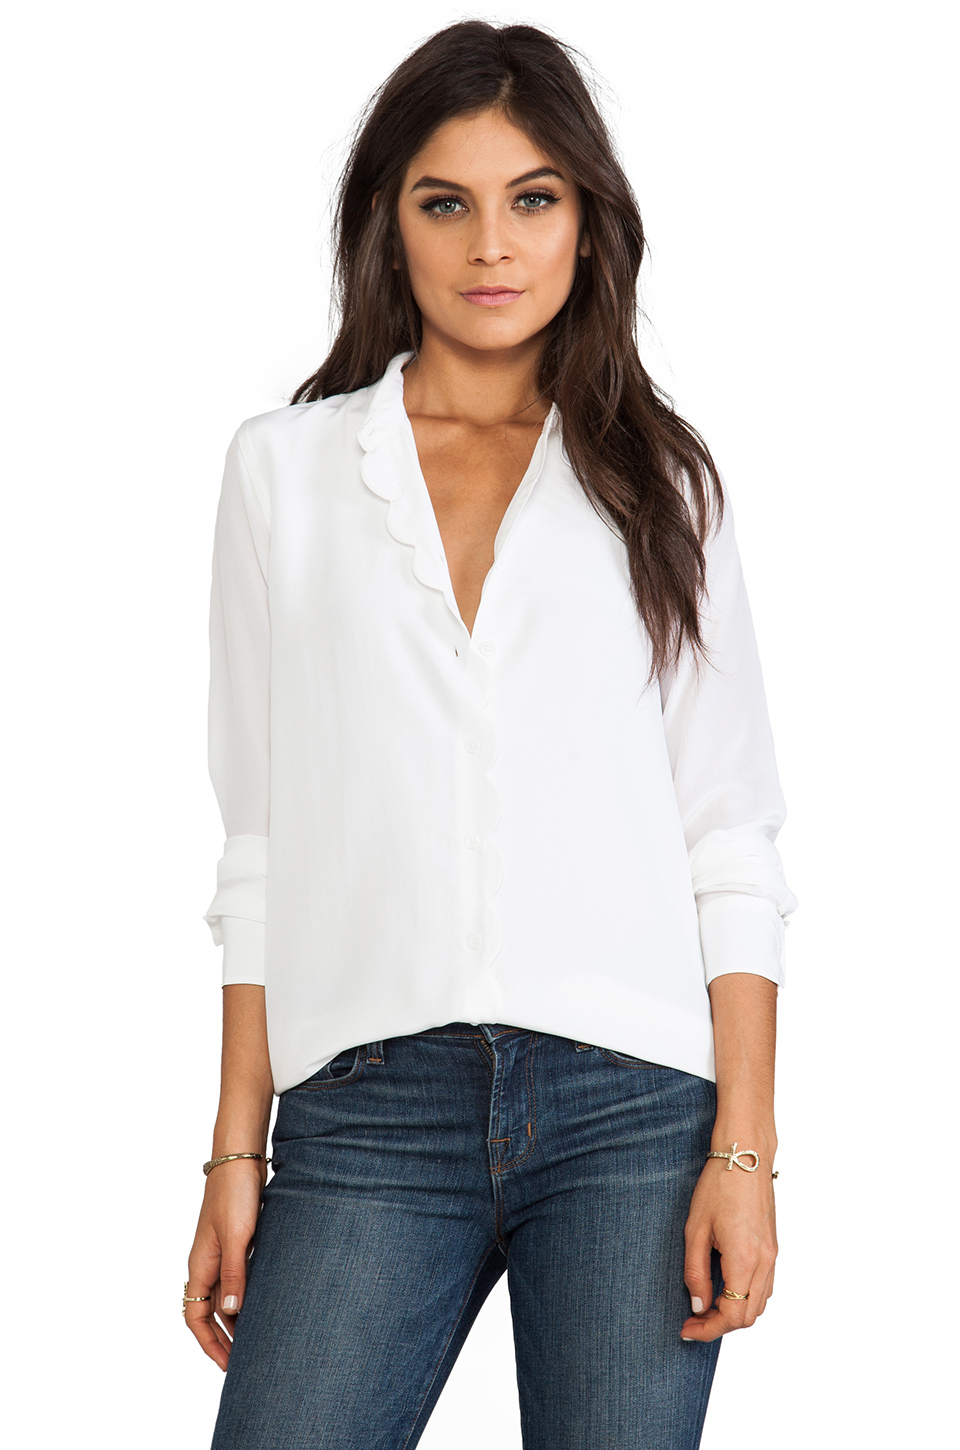 Equipment Brett Clean with Scallop Blouse in Bright White